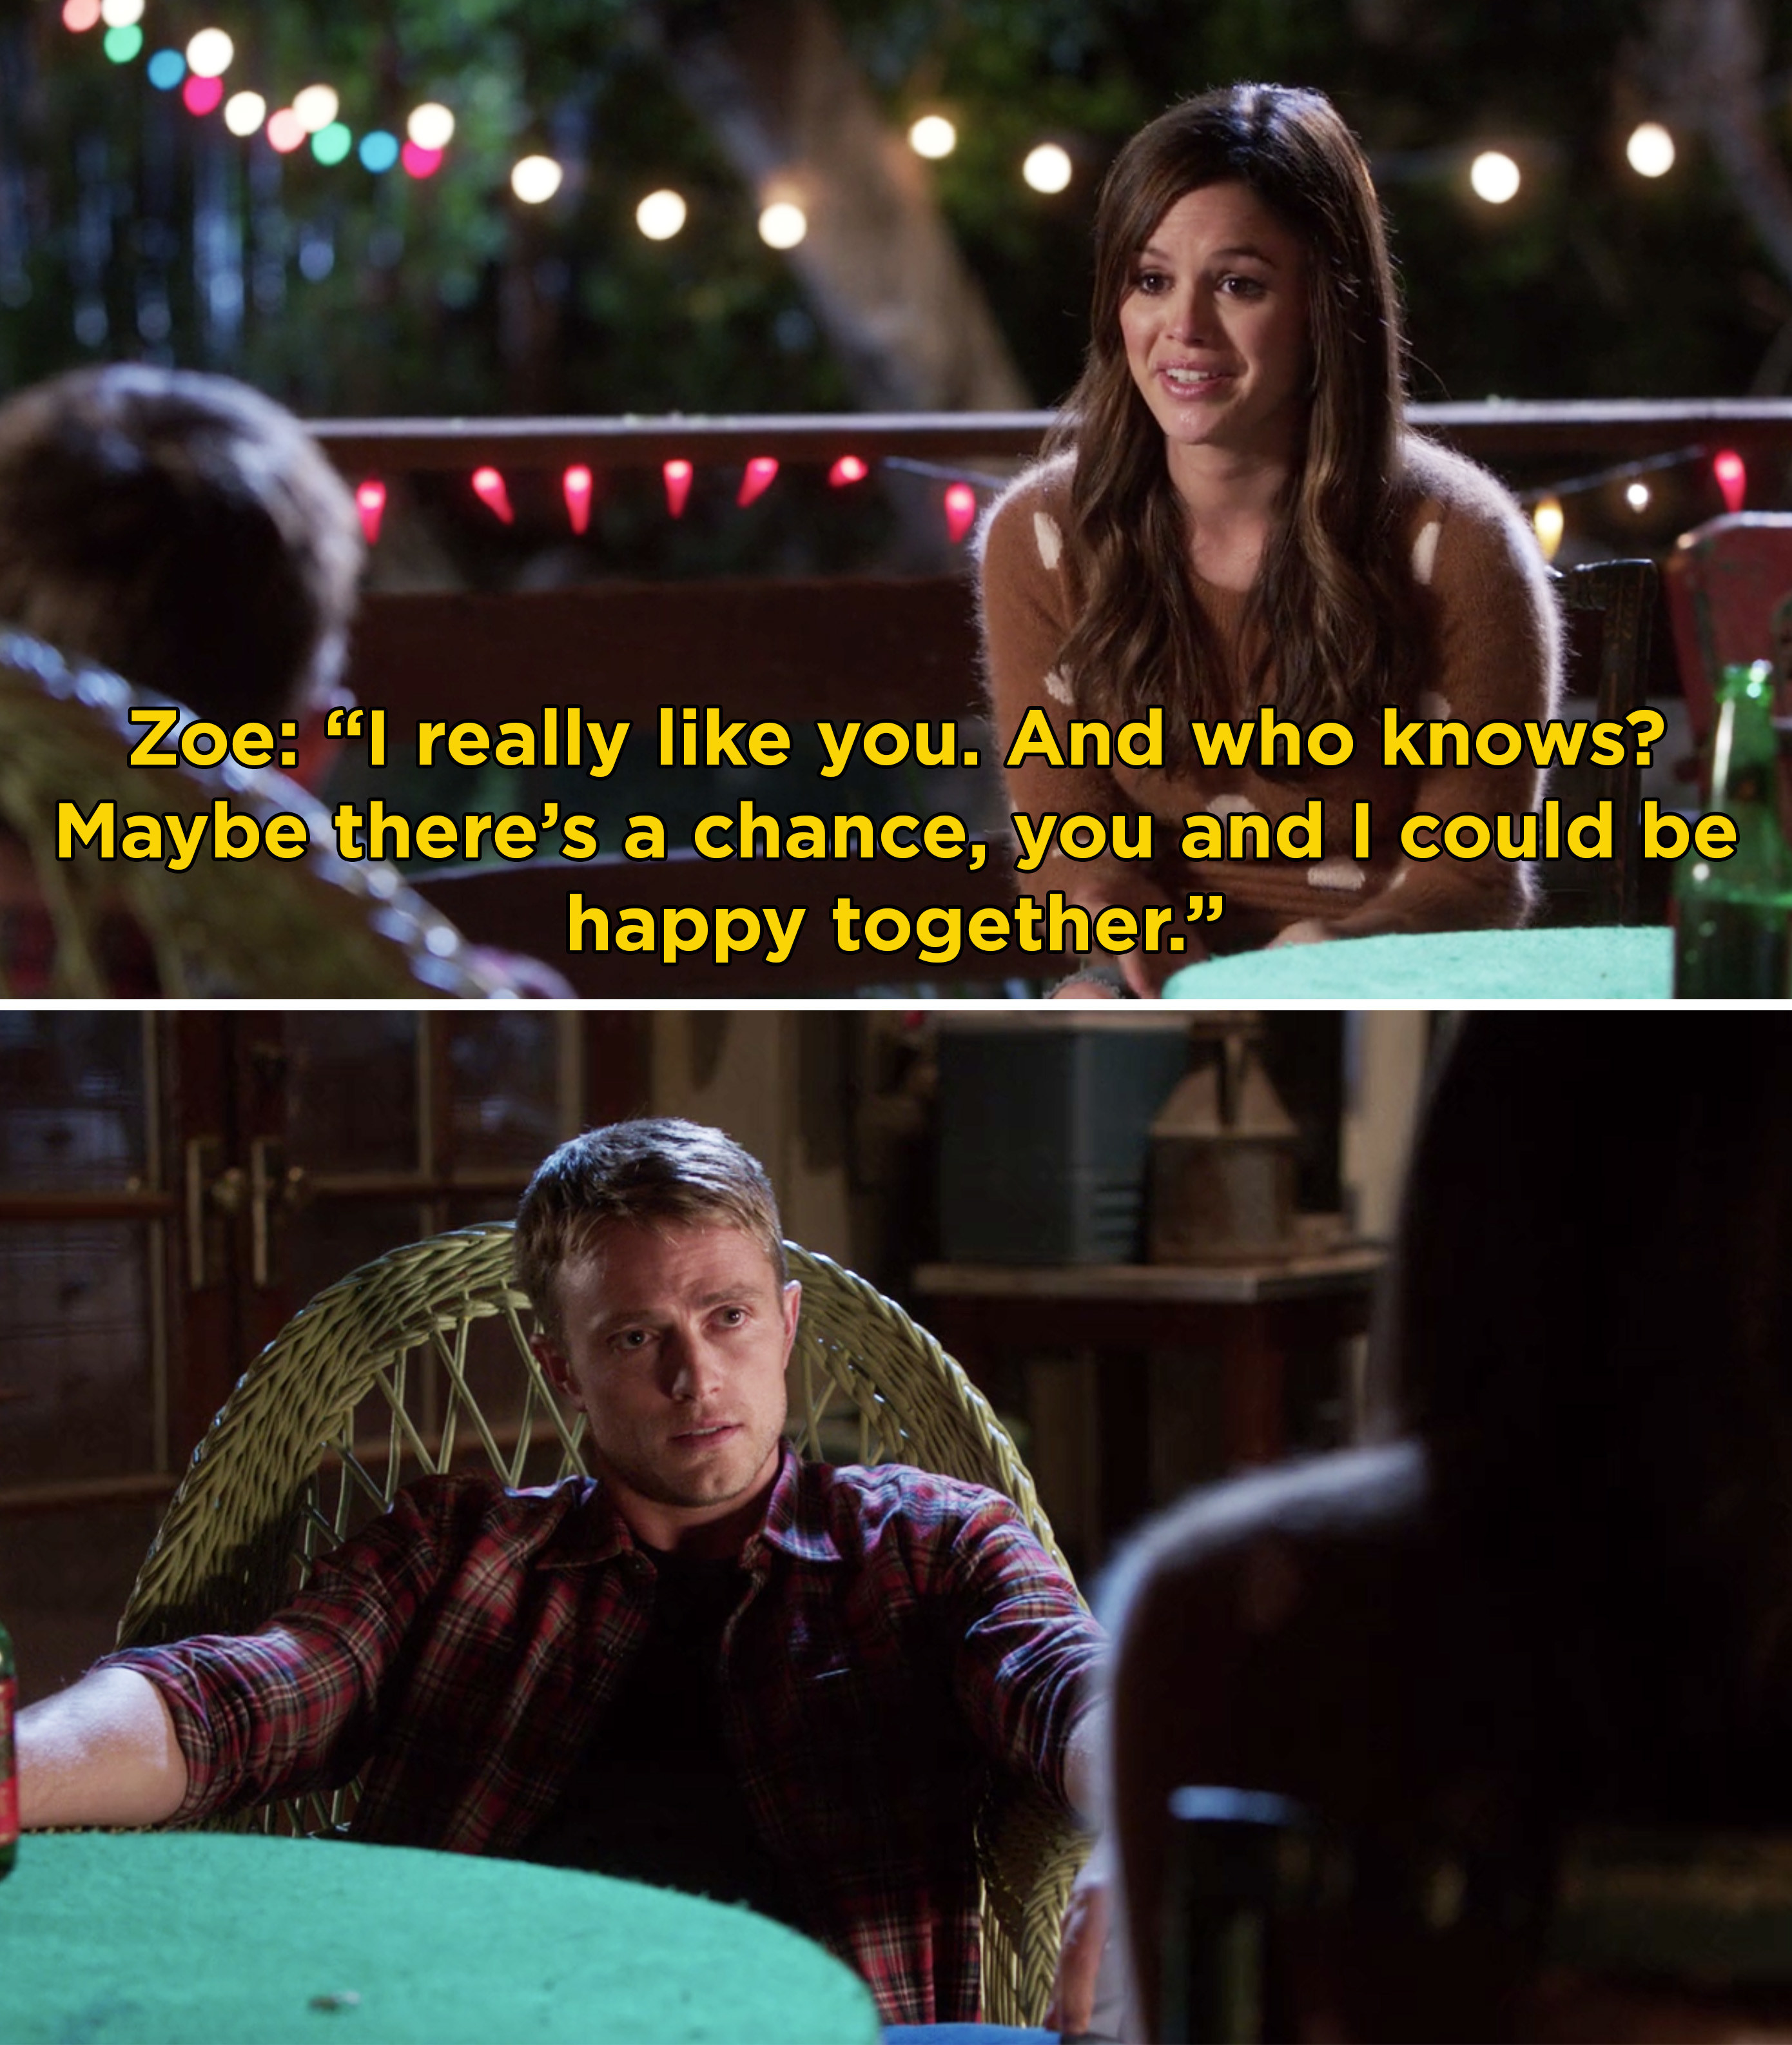 Zoe confessing her feelings for Wade and saying that she really likes him